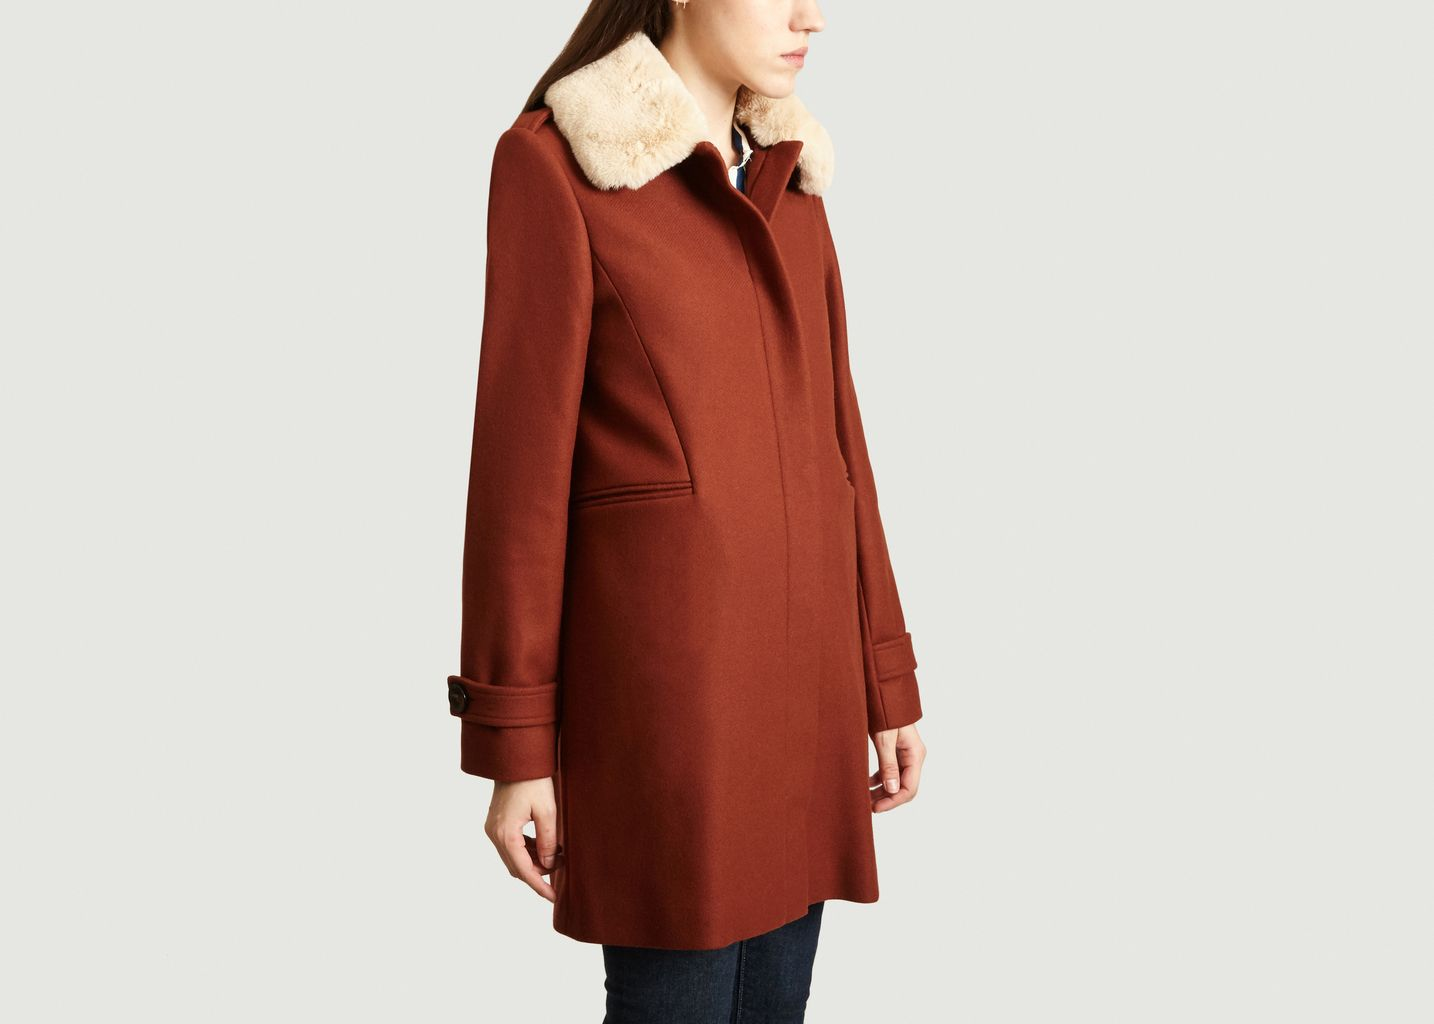 Manteau A Col Amovible Effet Fourrure Seynod - Trench And Coat